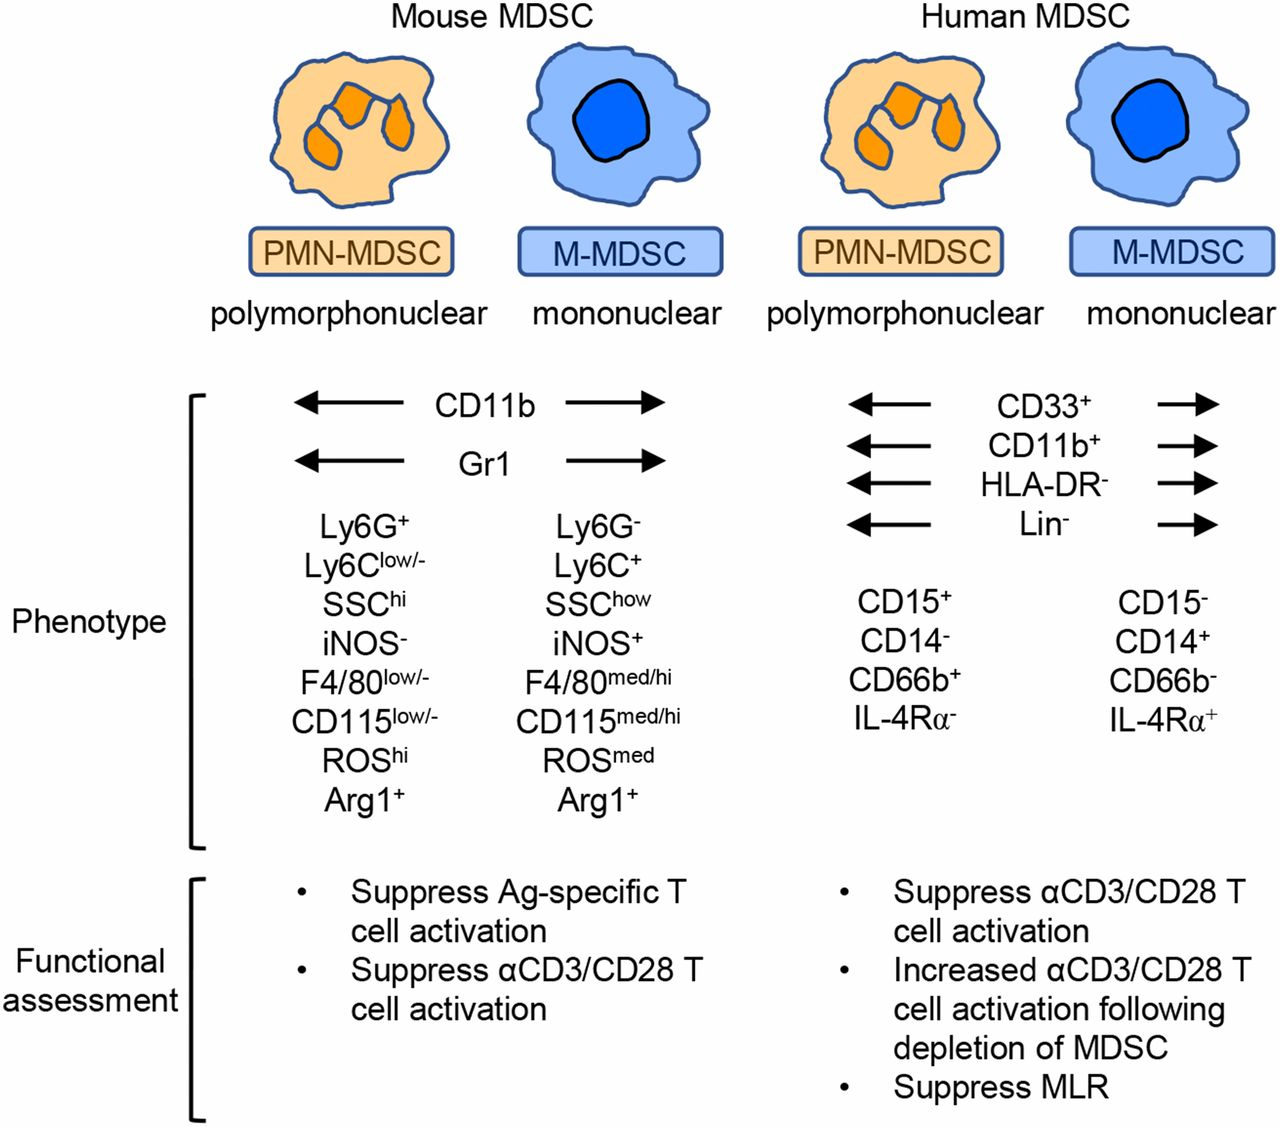 Myeloid-Derived Suppressor Cells: Immune-Suppressive Cells That